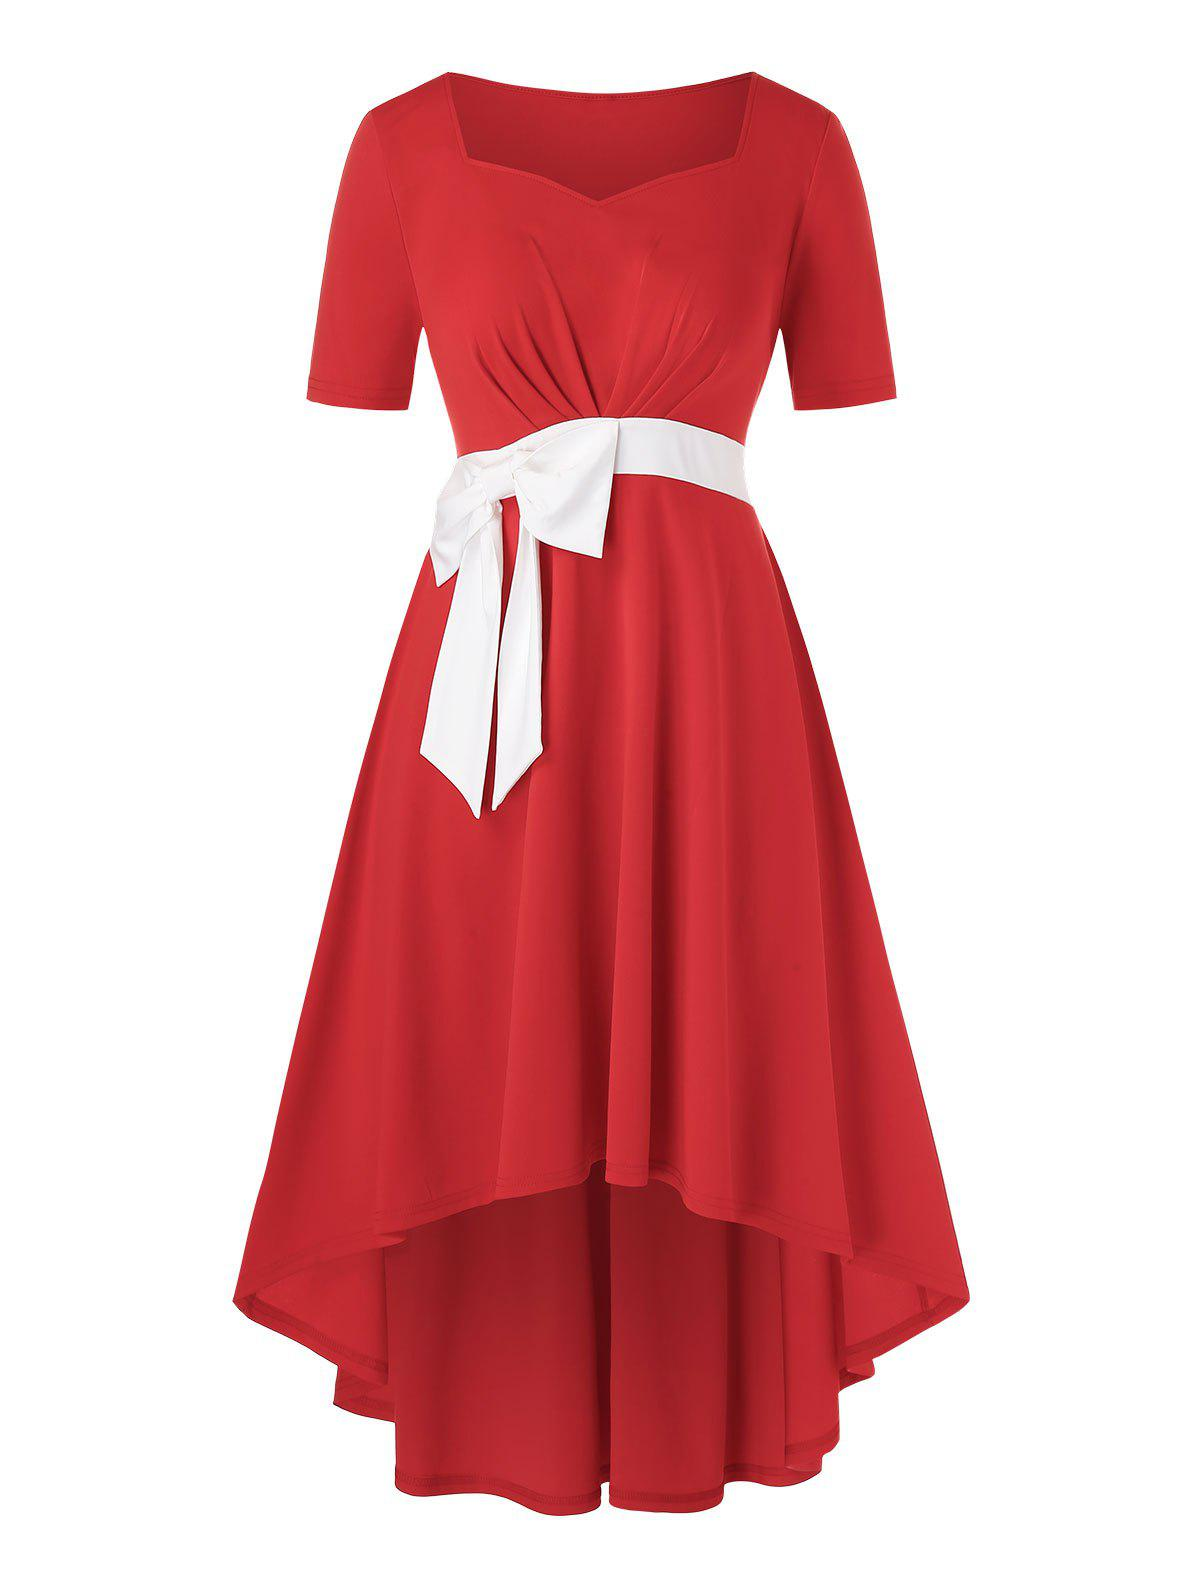 Plus Size Bowknot High Low Dress - RED 3X